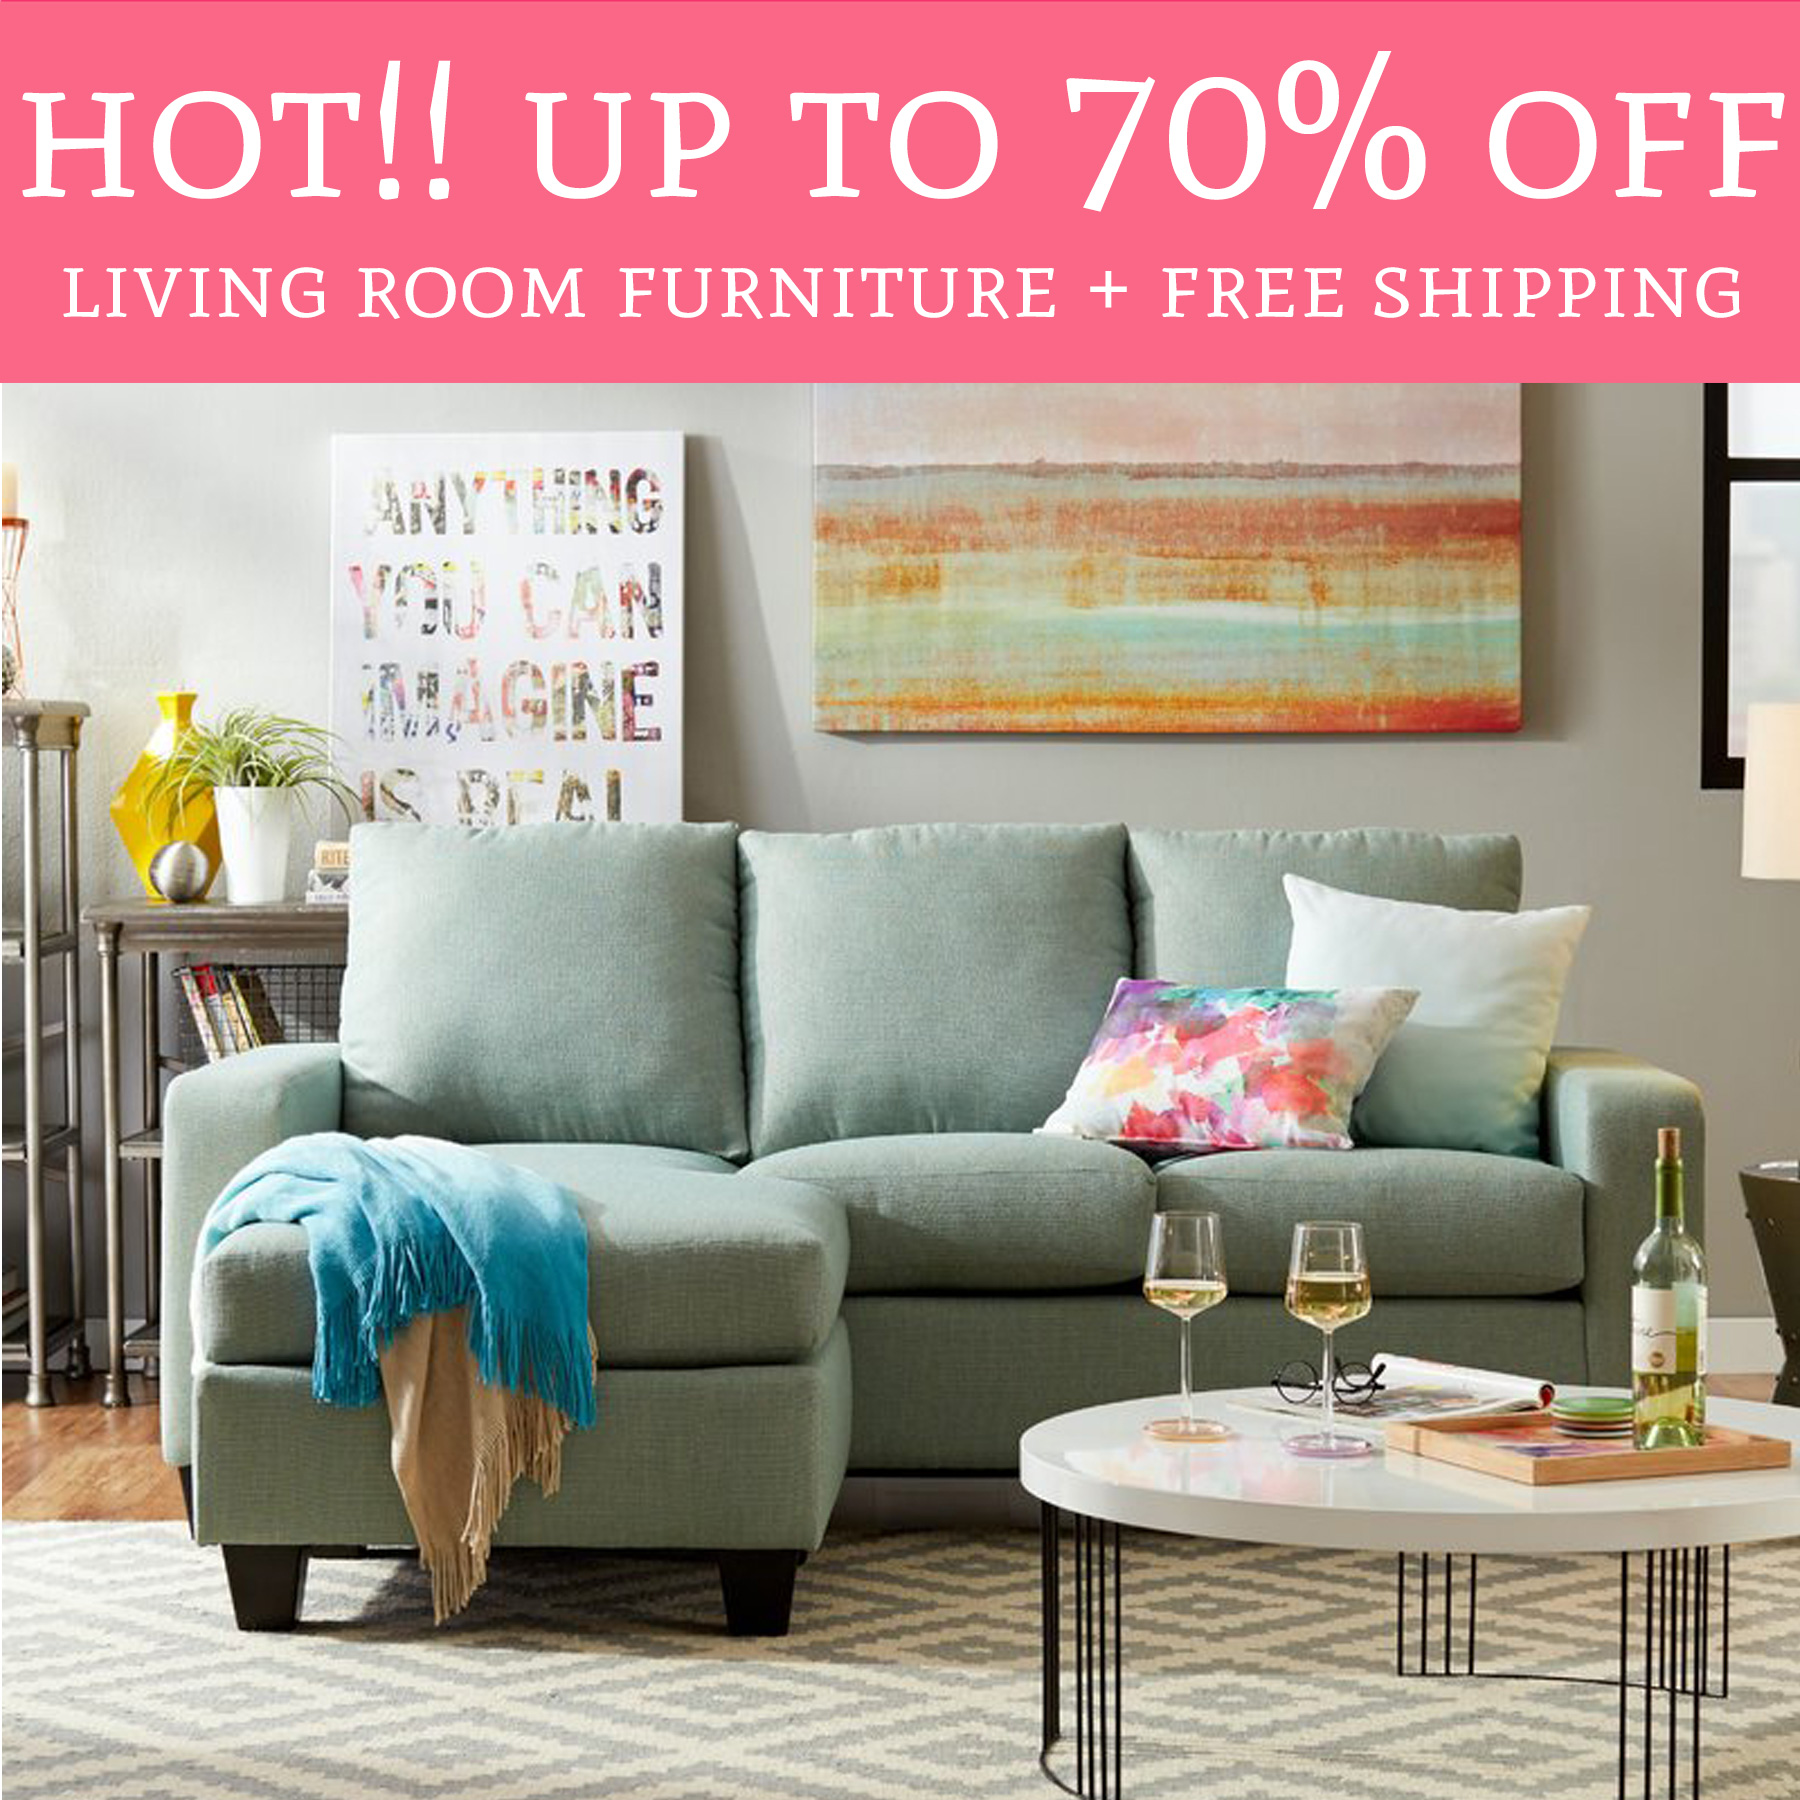 living room furniture free shipping whoa up to 70 living room furniture free shipping 21341